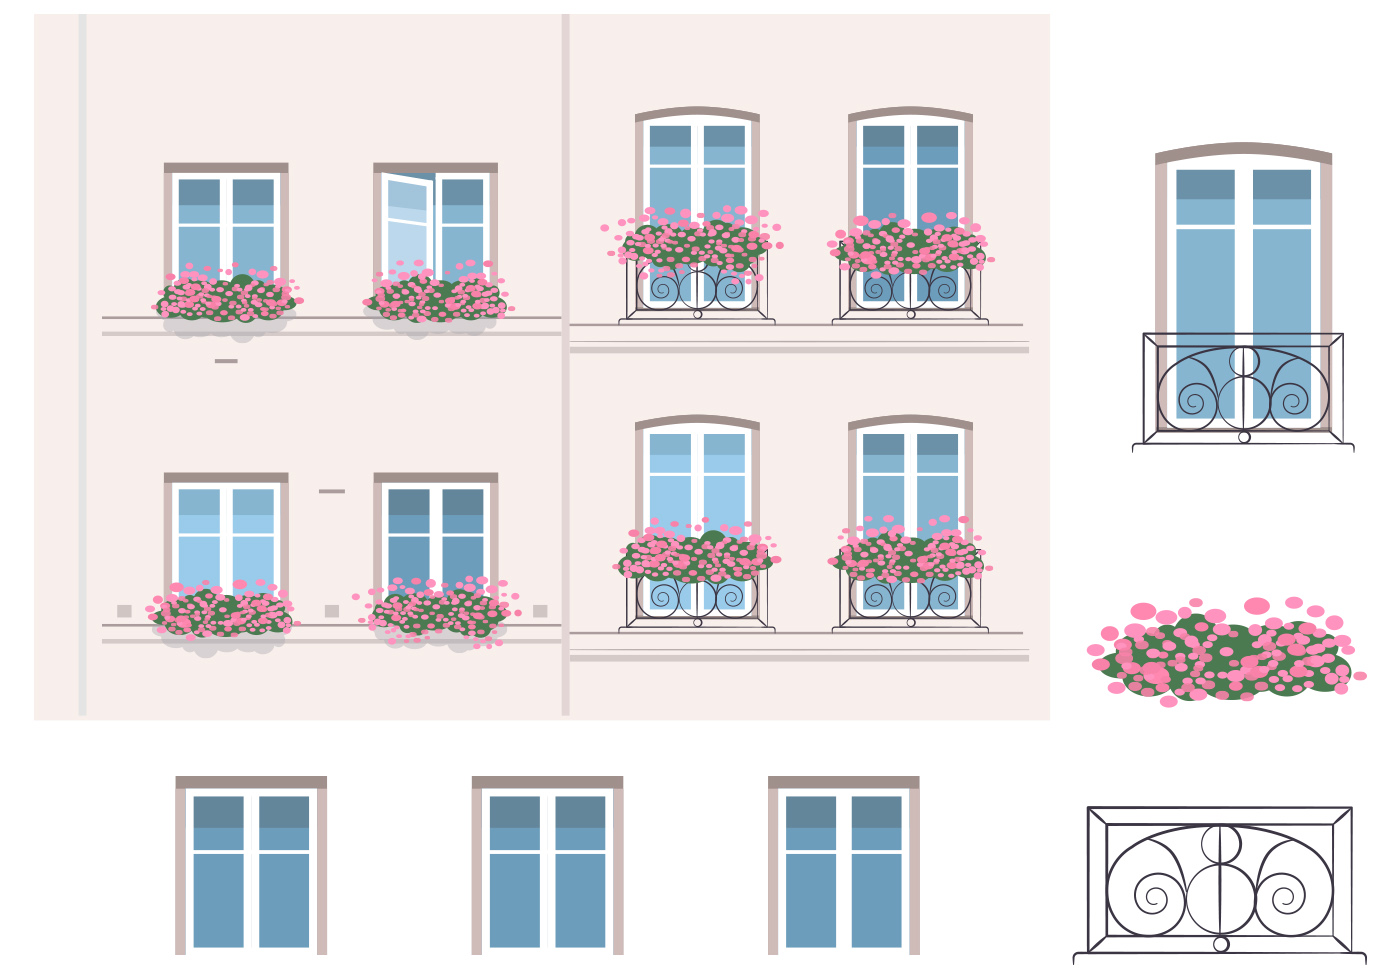 Architecture and balcony vector elements download free